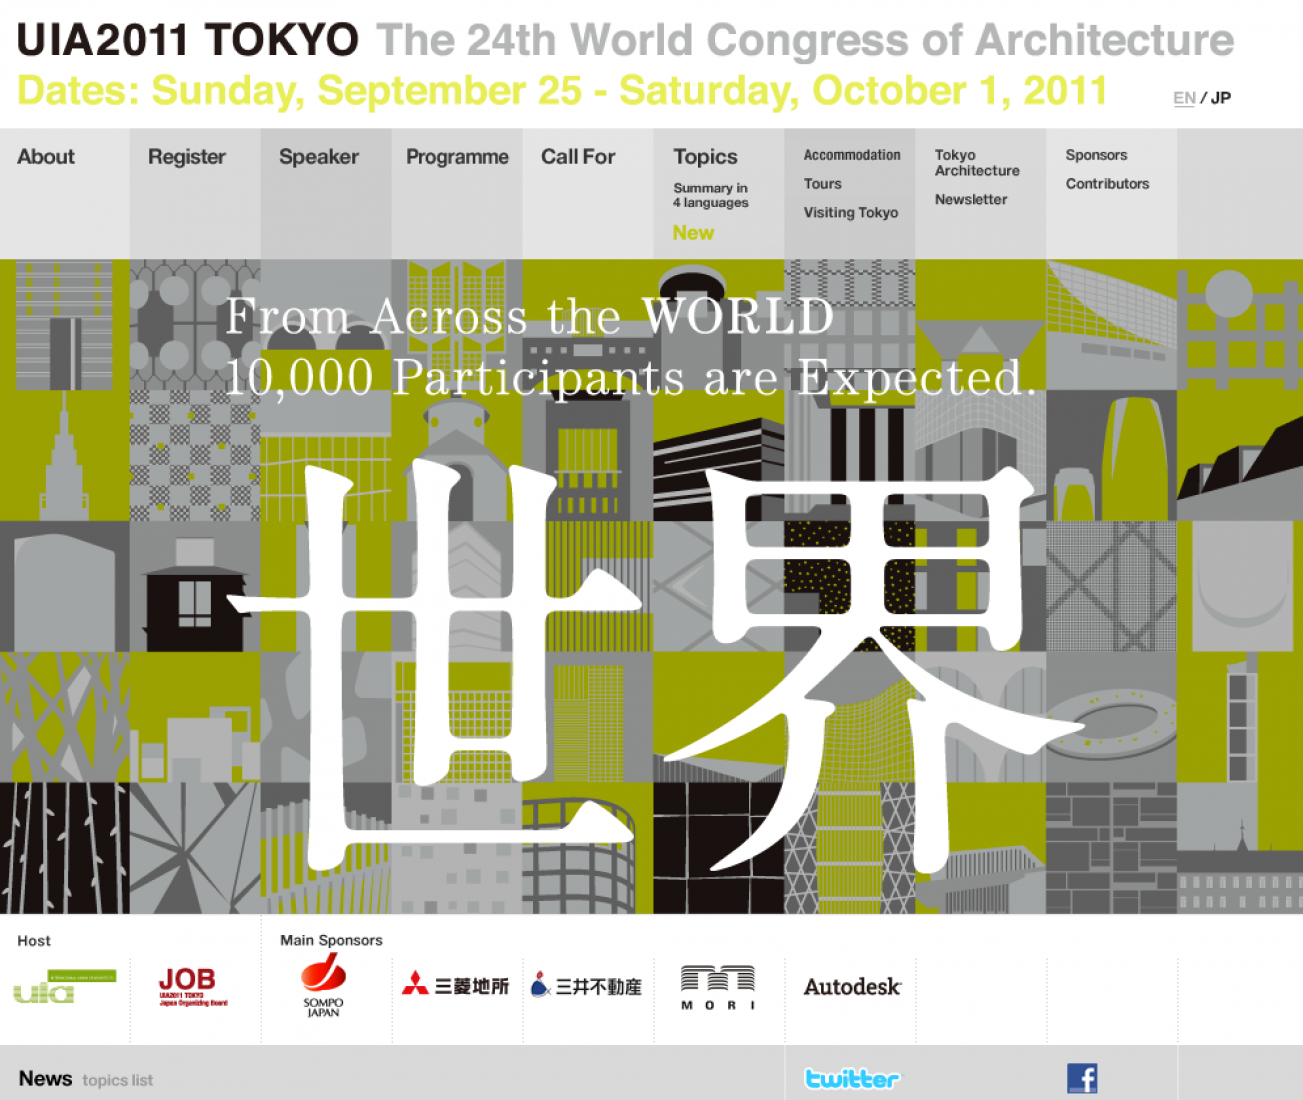 UIA2011 TOKYO, The 24th World Congress of Architecture